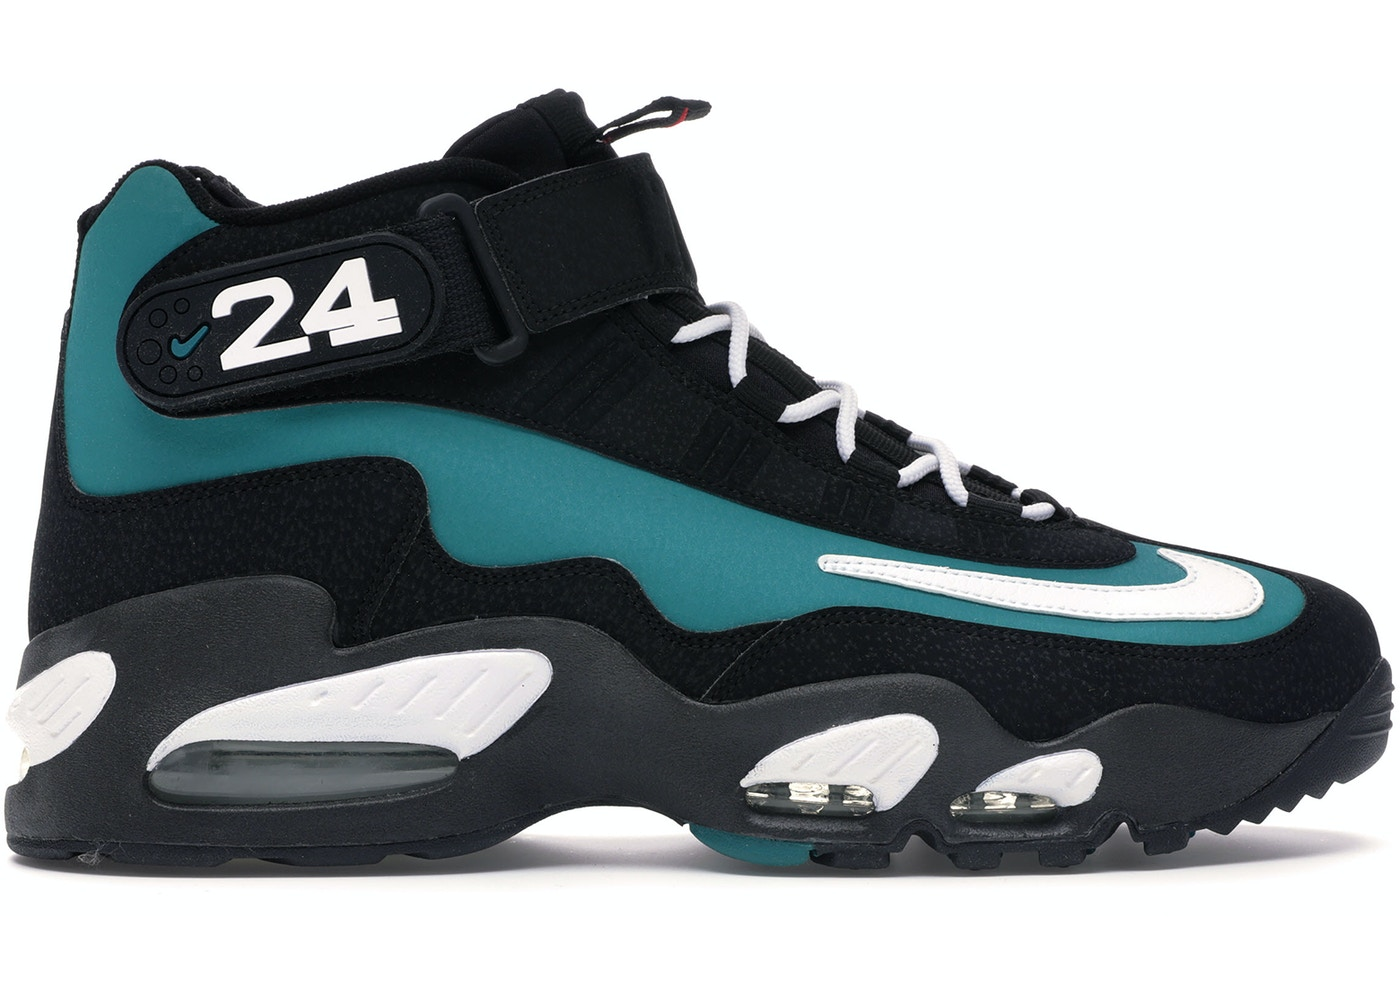 official photos d1289 780aa Nike Air Griffey Max 1 Freshwater